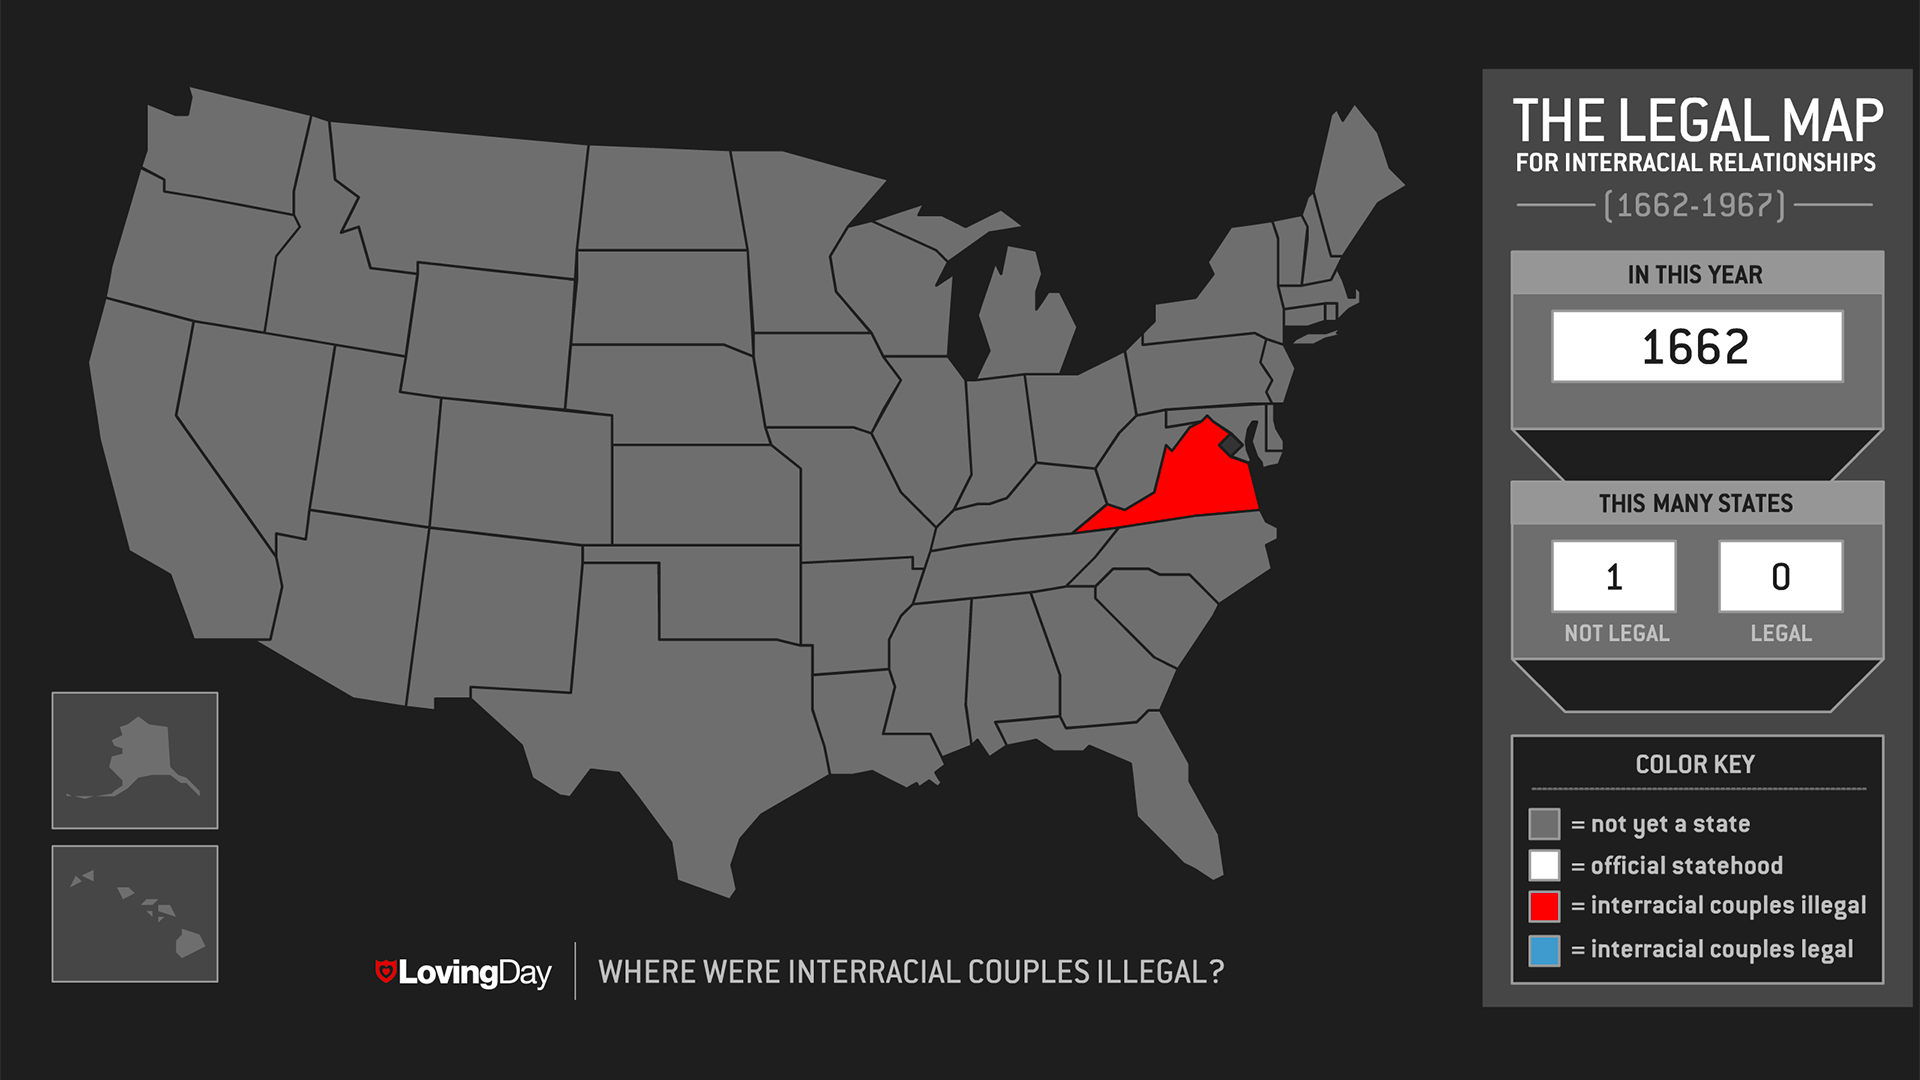 Loving Day: where were interracial couples illegal? The Legal Map for interracial relationships (1662-1967). In this year: 1662. This many states: 1 not legal, 0 legal. Virginia is the only official state.